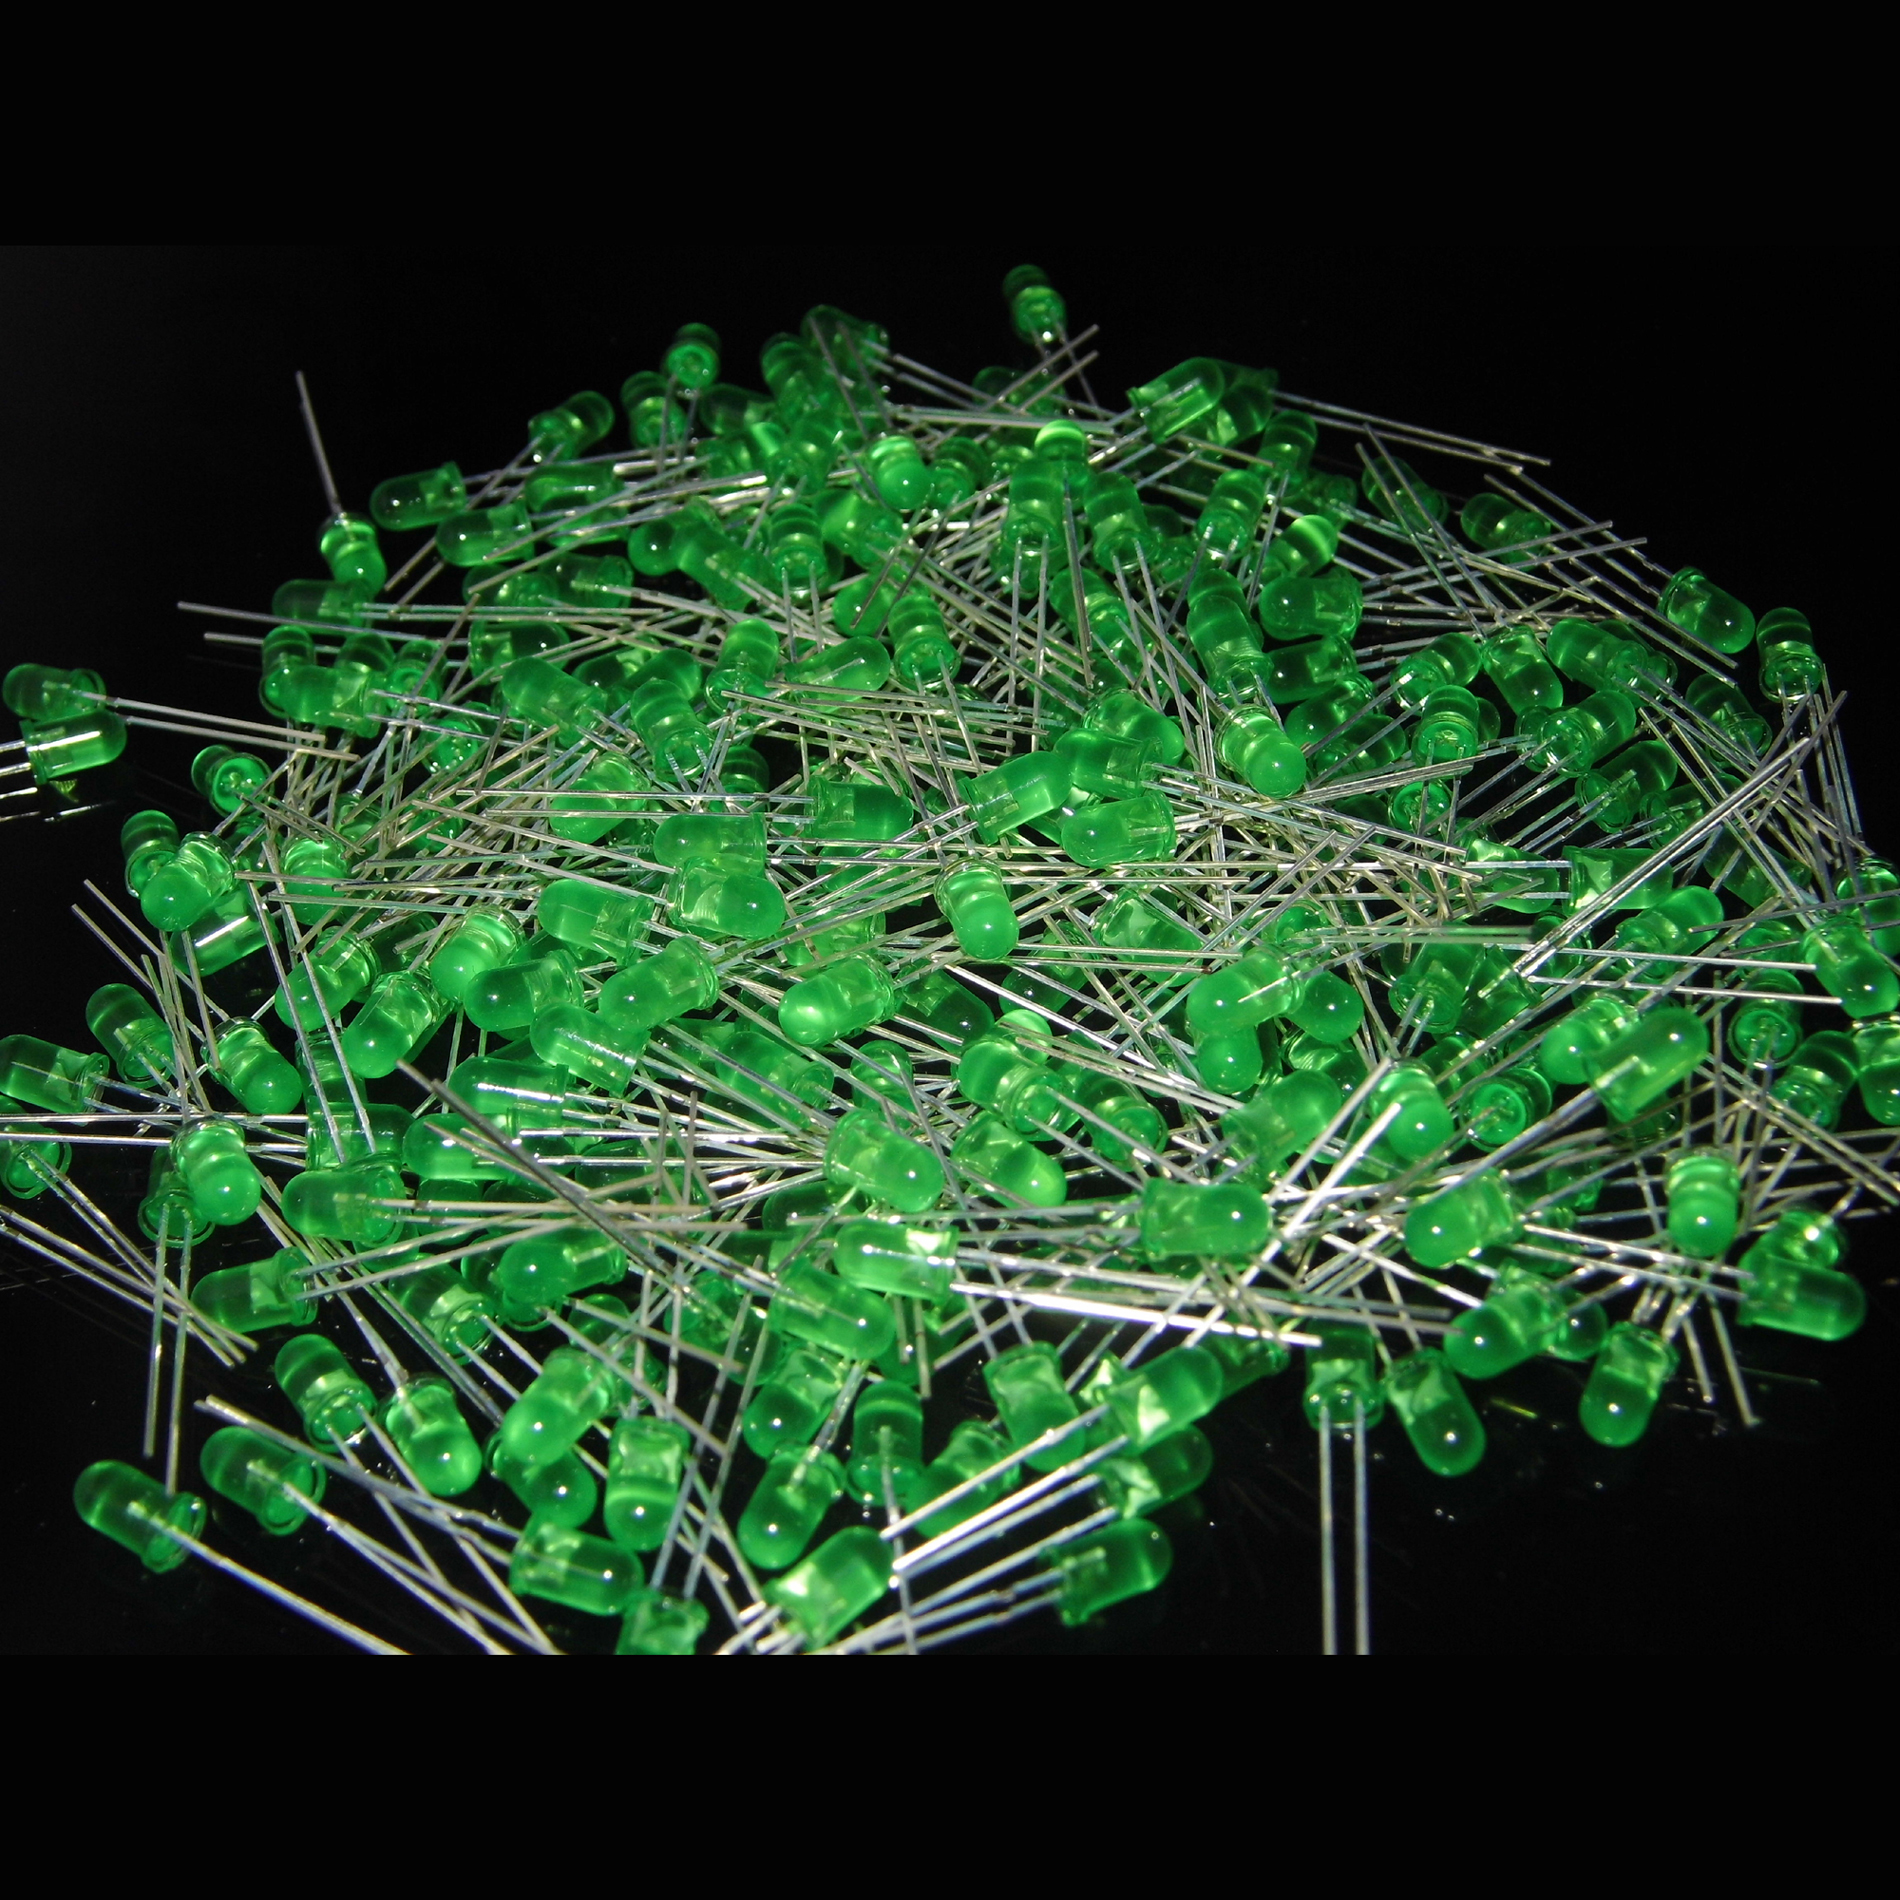 5mm Green LED diffused